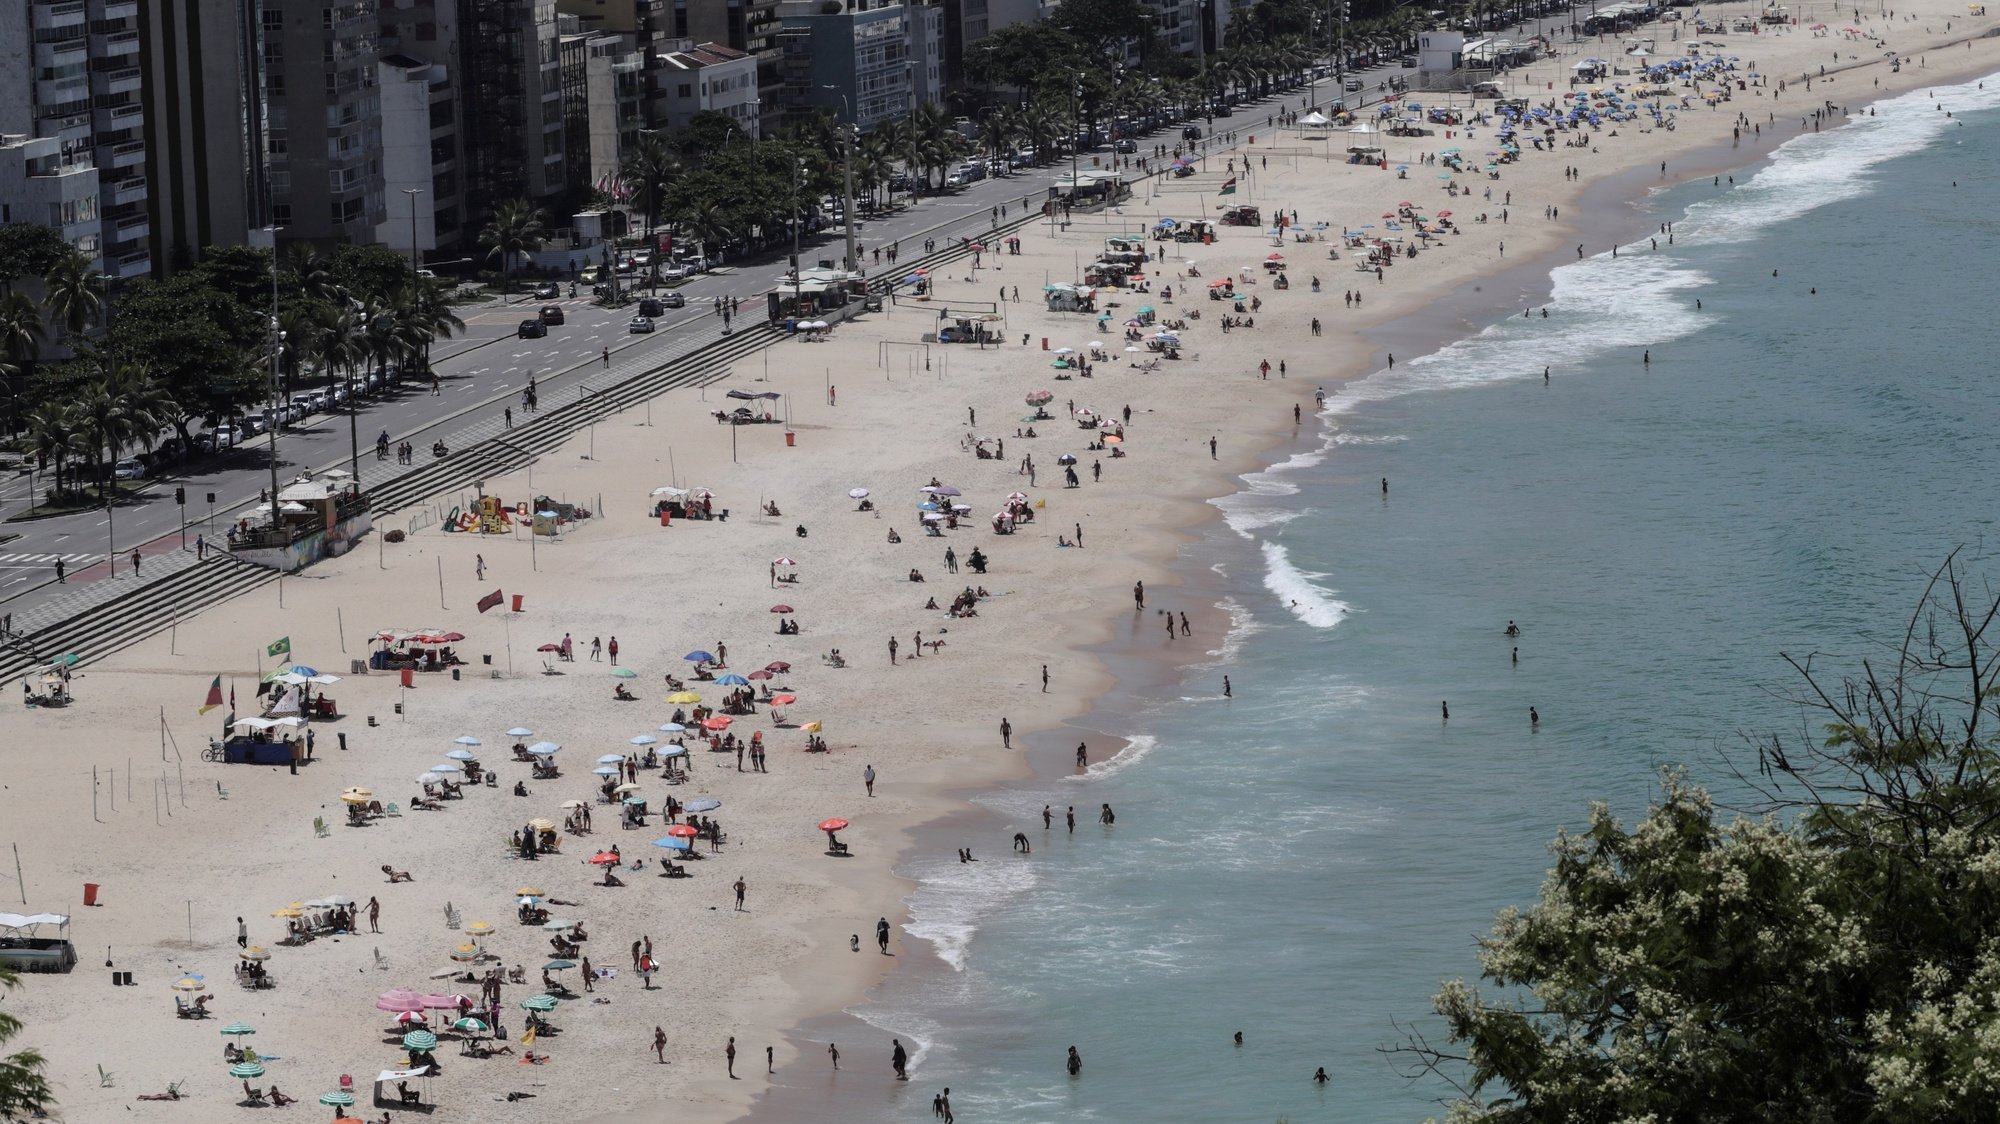 epa09022733 General view of Leblon beach full of bathers in Rio de Janeiro, Brazil, 18 February 2021. Brazil, one of the countries hardest hit by the coronavirus pandemic along with the United States and India, on 18 February 2021 reached 243,457 deaths and 10,030,626 accumulated cases since the first contagion was registered, almost a year ago.  EPA/Antonio Lacerda